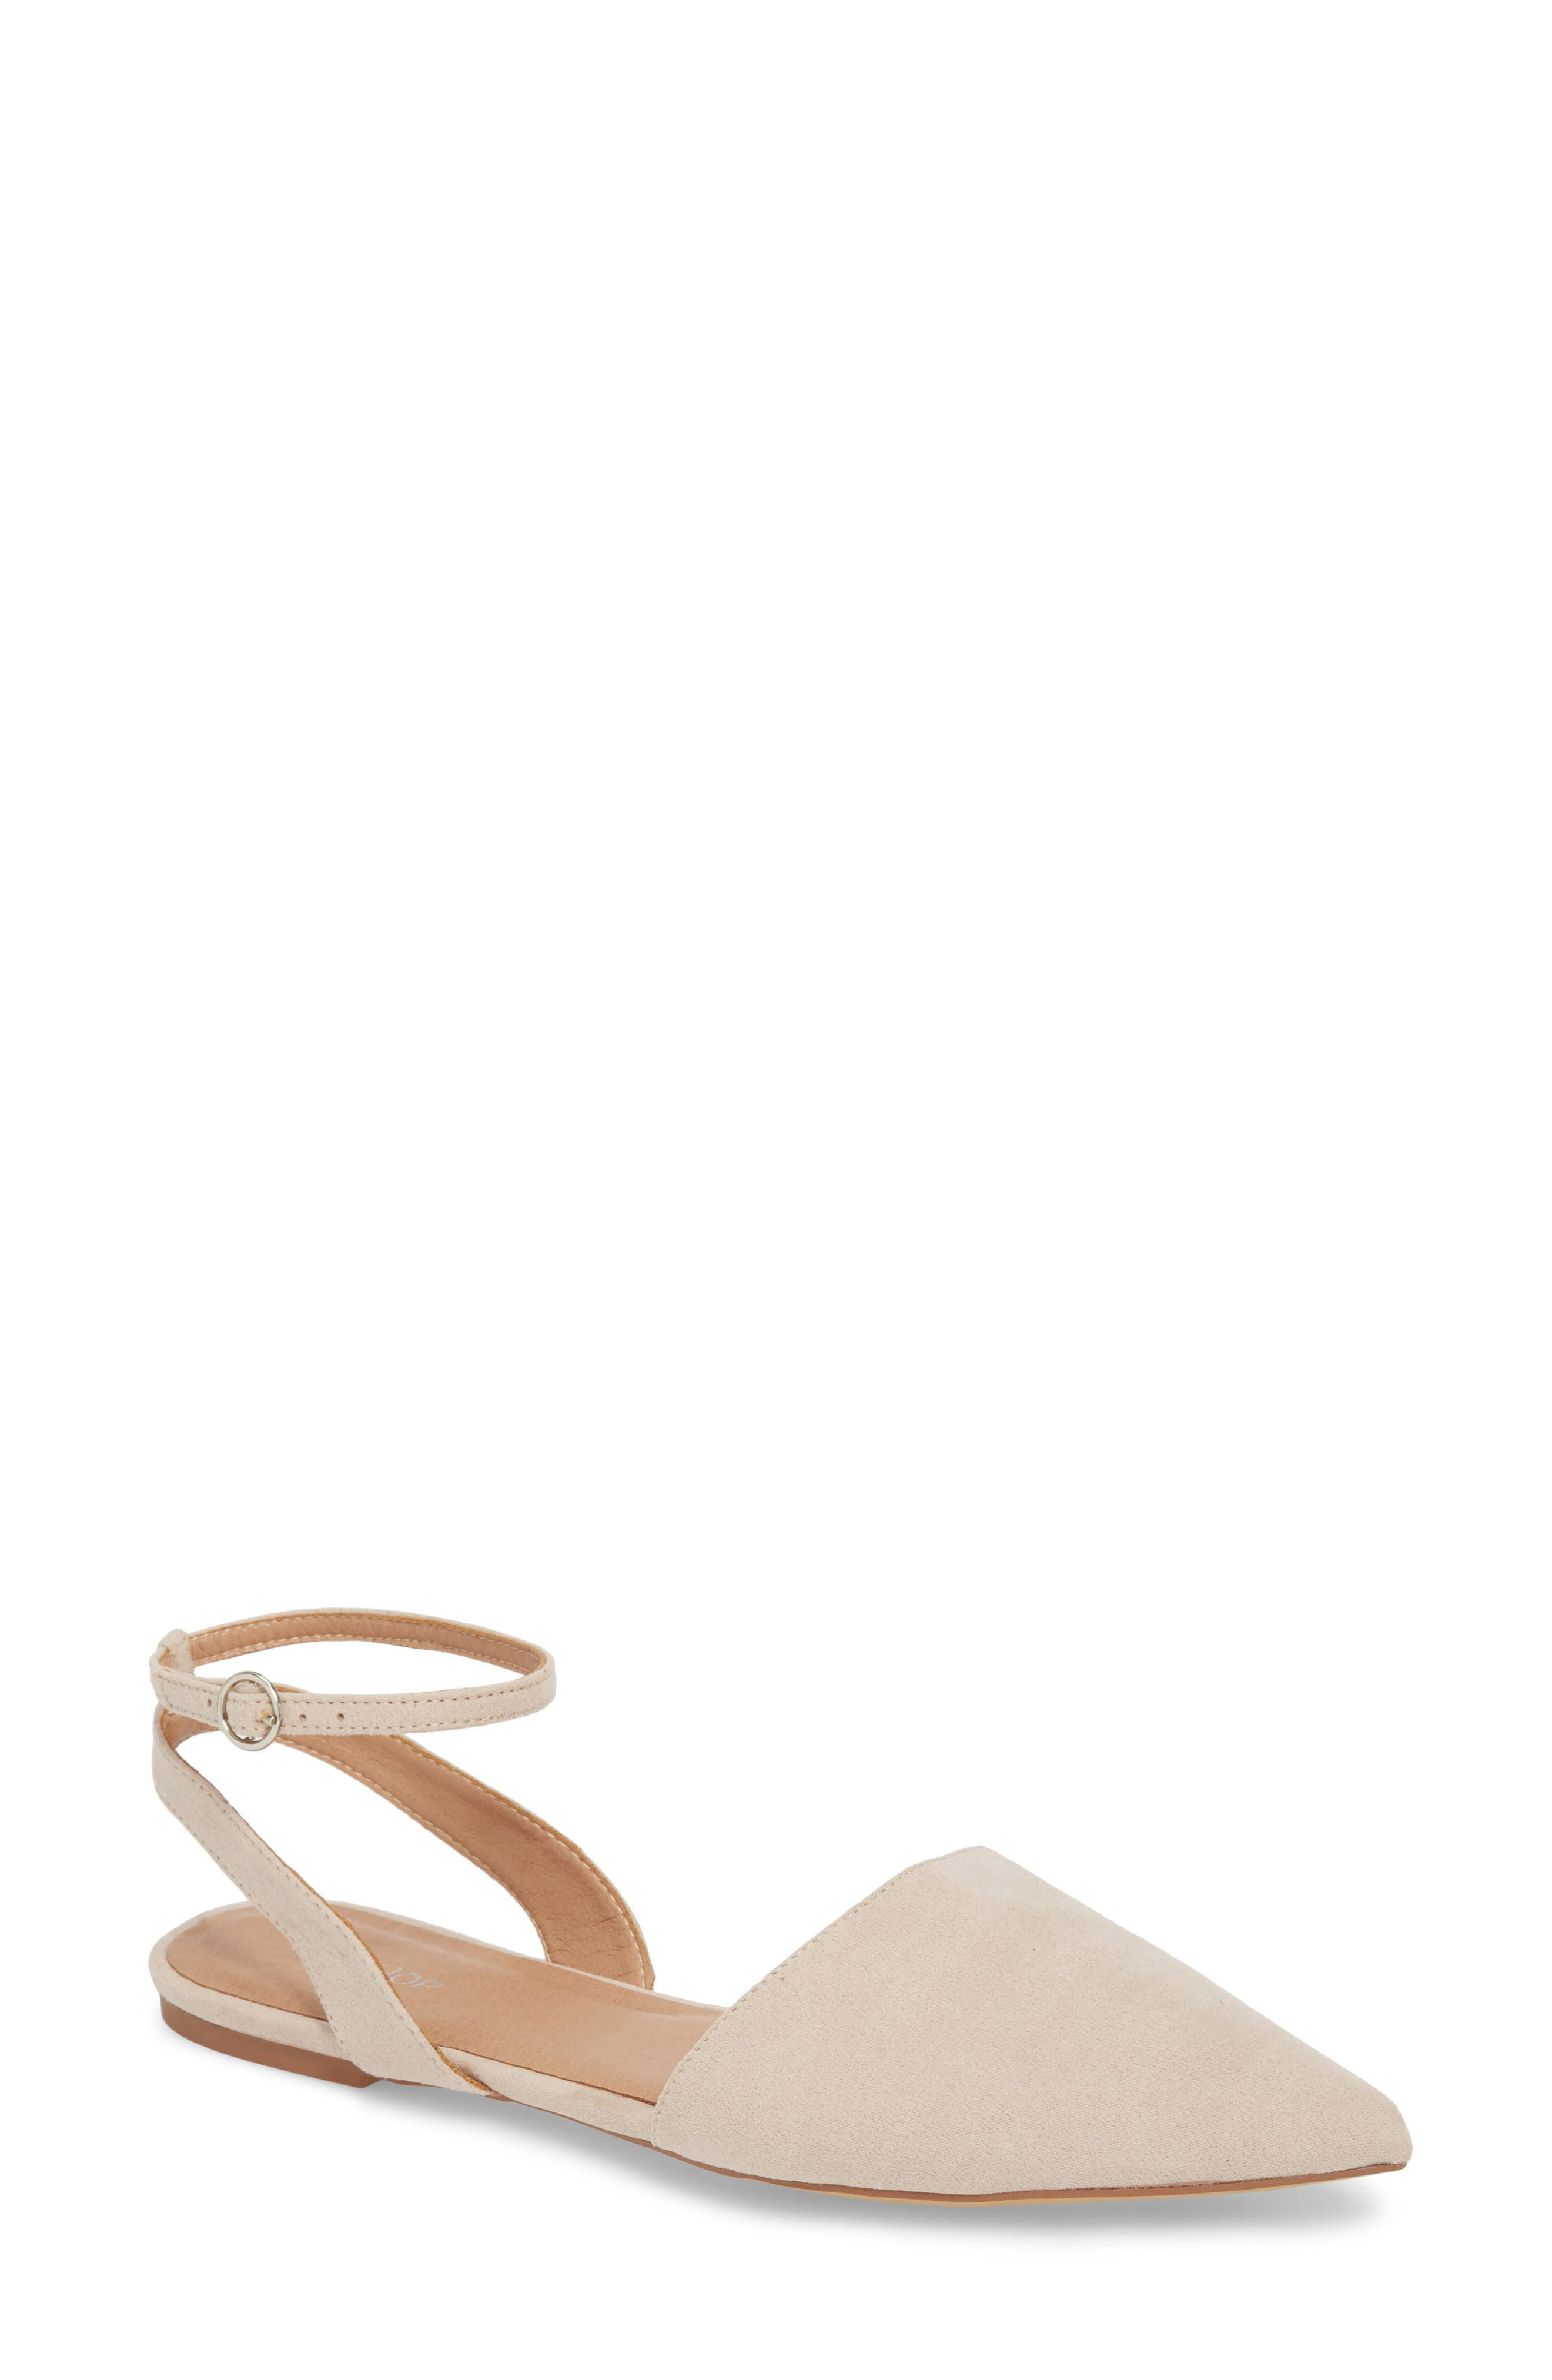 Anne Pointy Toe Flat,                             Main thumbnail 1, color,                             NUDE